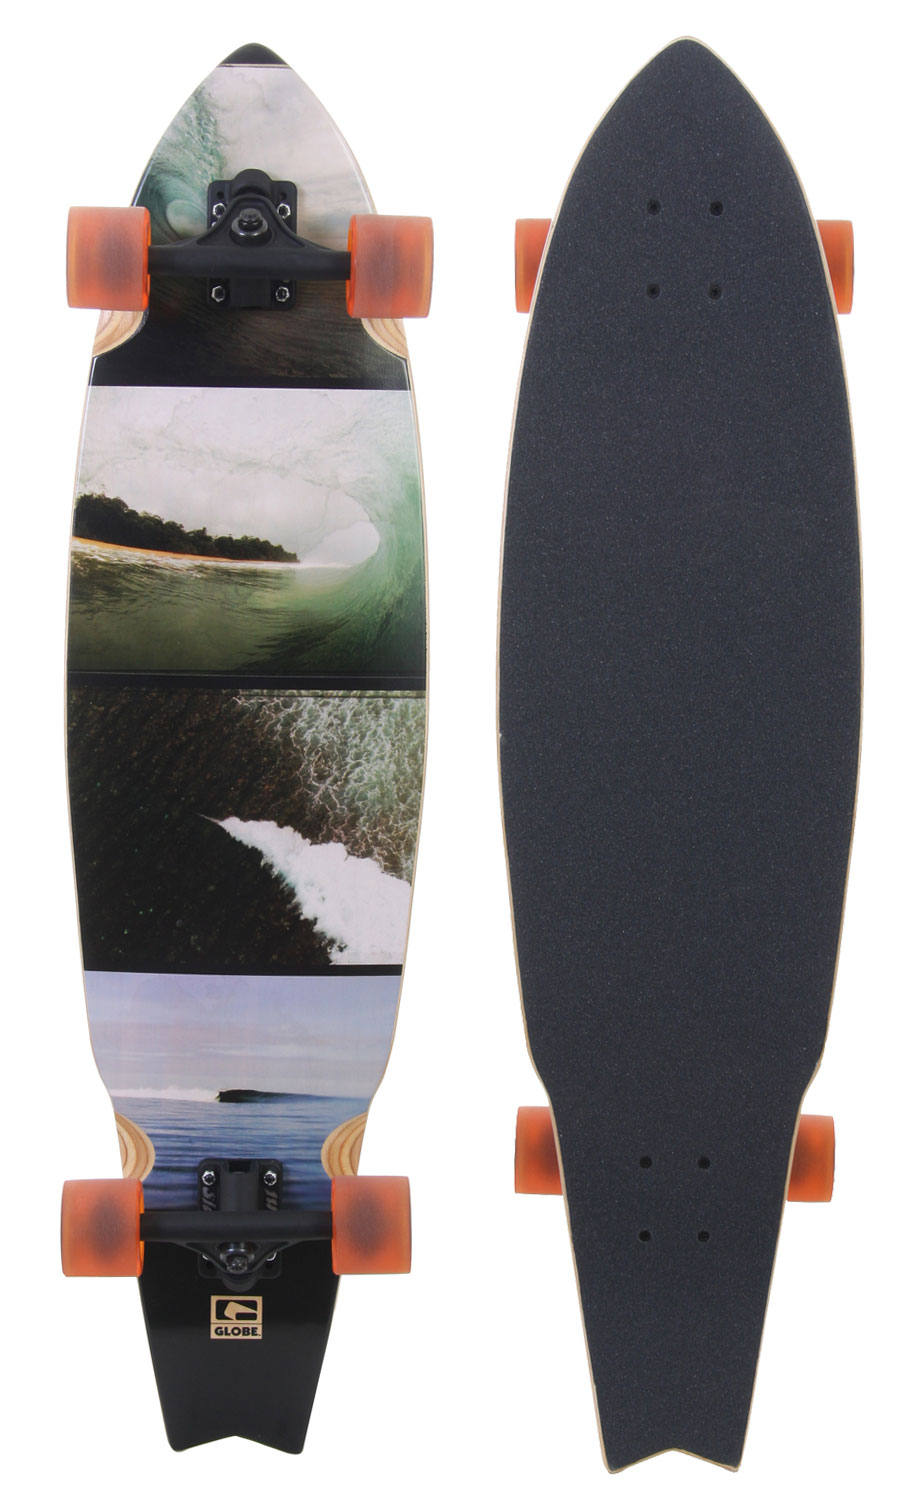 Skateboard Key Features of the Globe Empty Waves Longboard Complete: Chinese maple resin 8 ply Inverted trucks 150mm, hangar and baseplate black matte Wheels 65mm Globe abec 5 bearings - $159.95